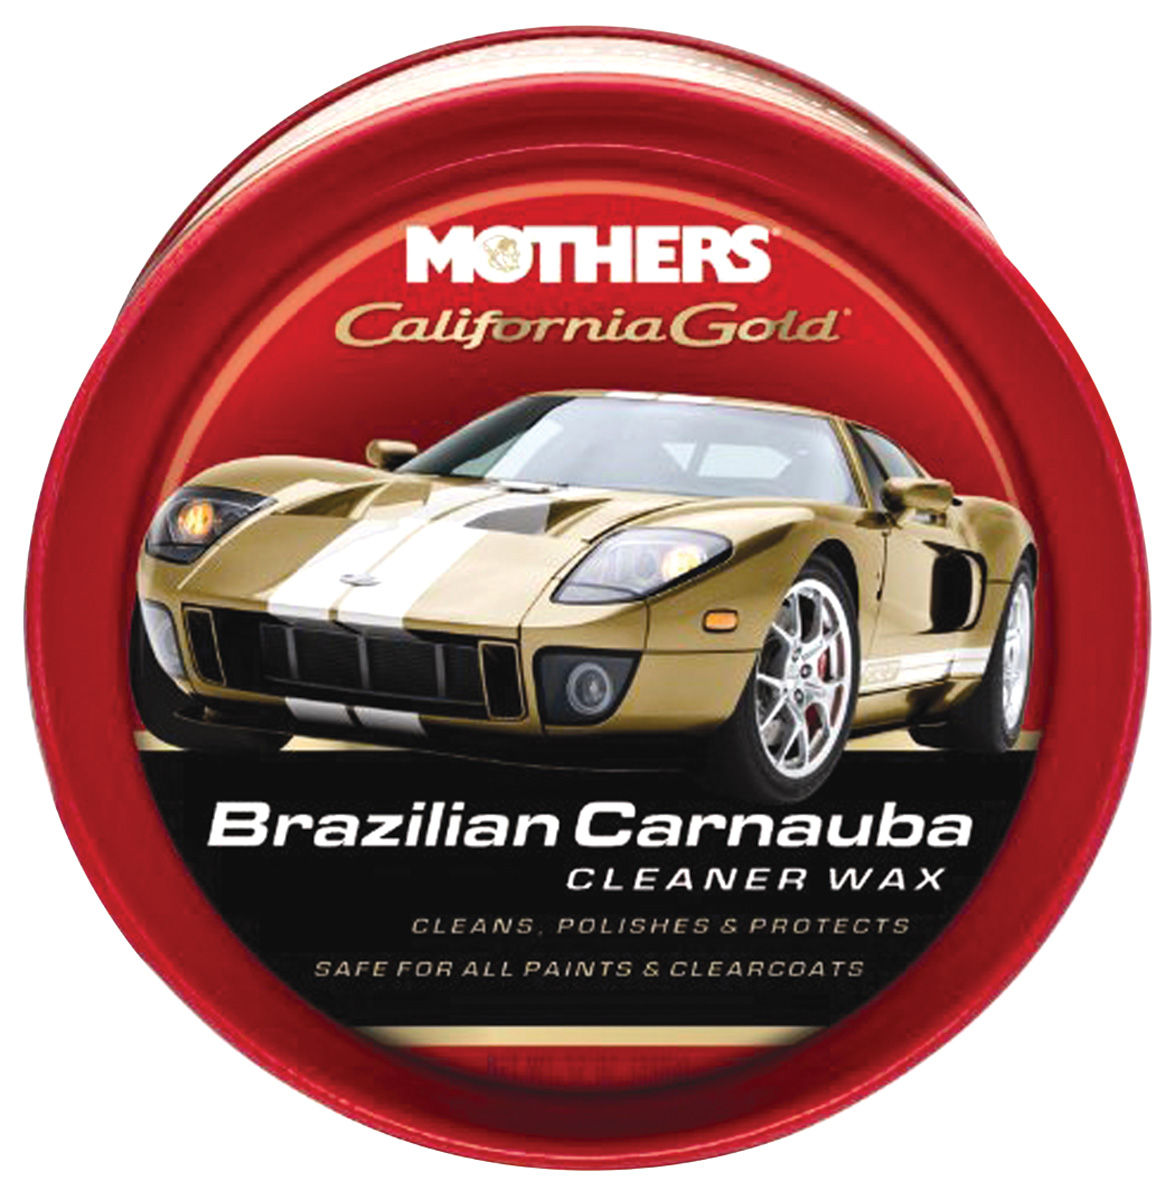 Brazilian Carnauba Cleaner Wax, Mothers California Gold, 12-oz. paste